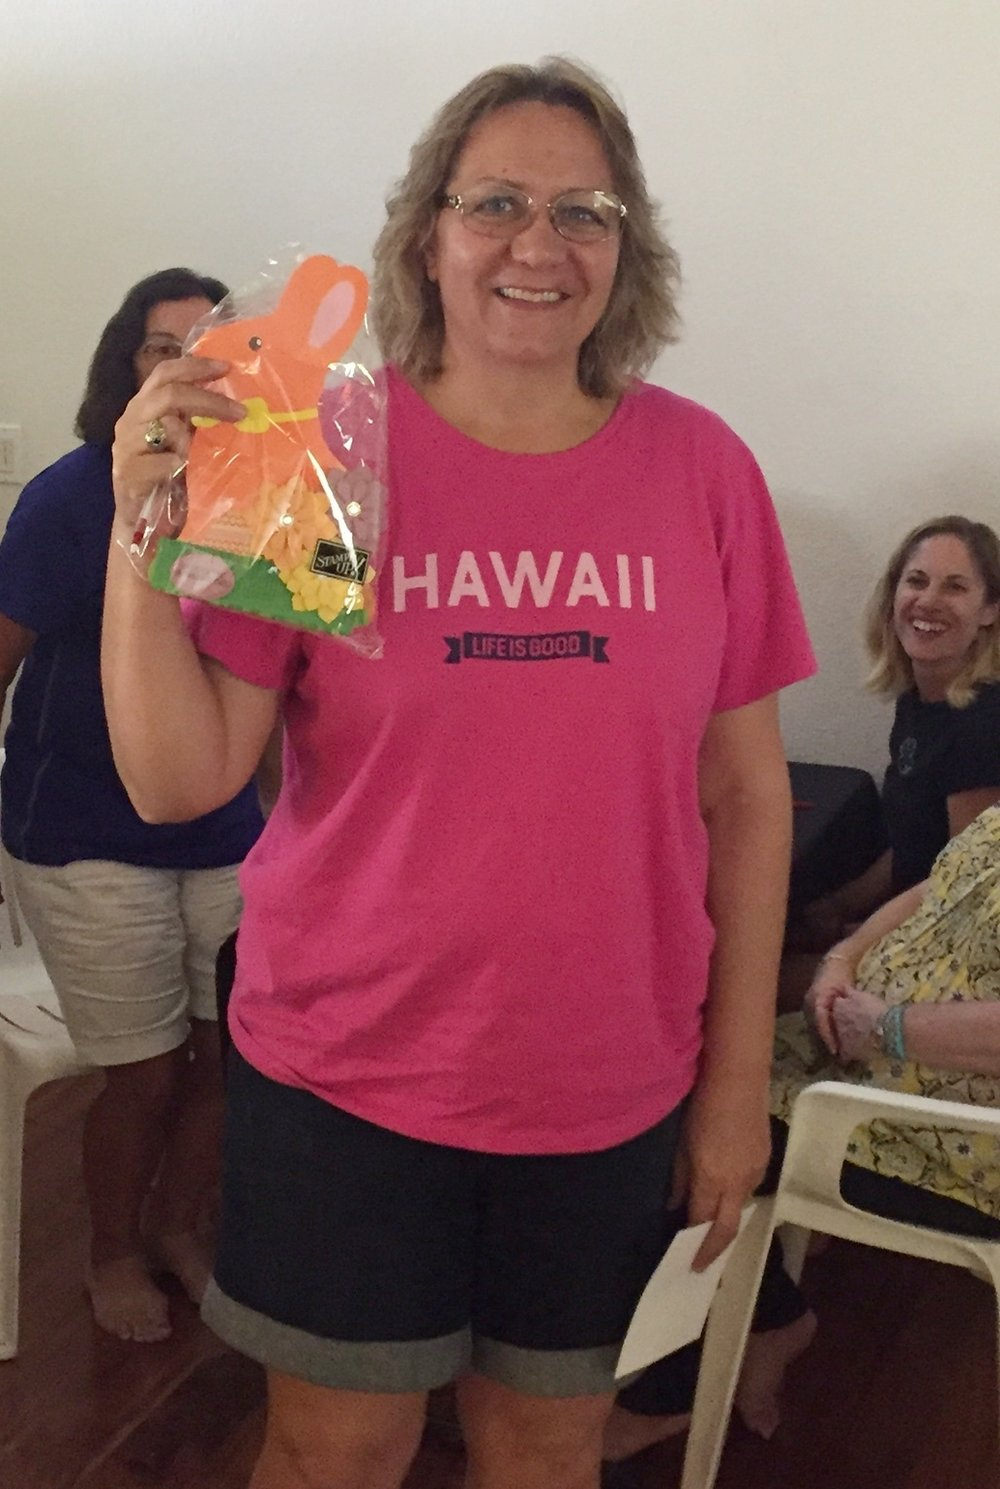 Shelly Wins the Aloha Prize -www.stampedwithaloha.com